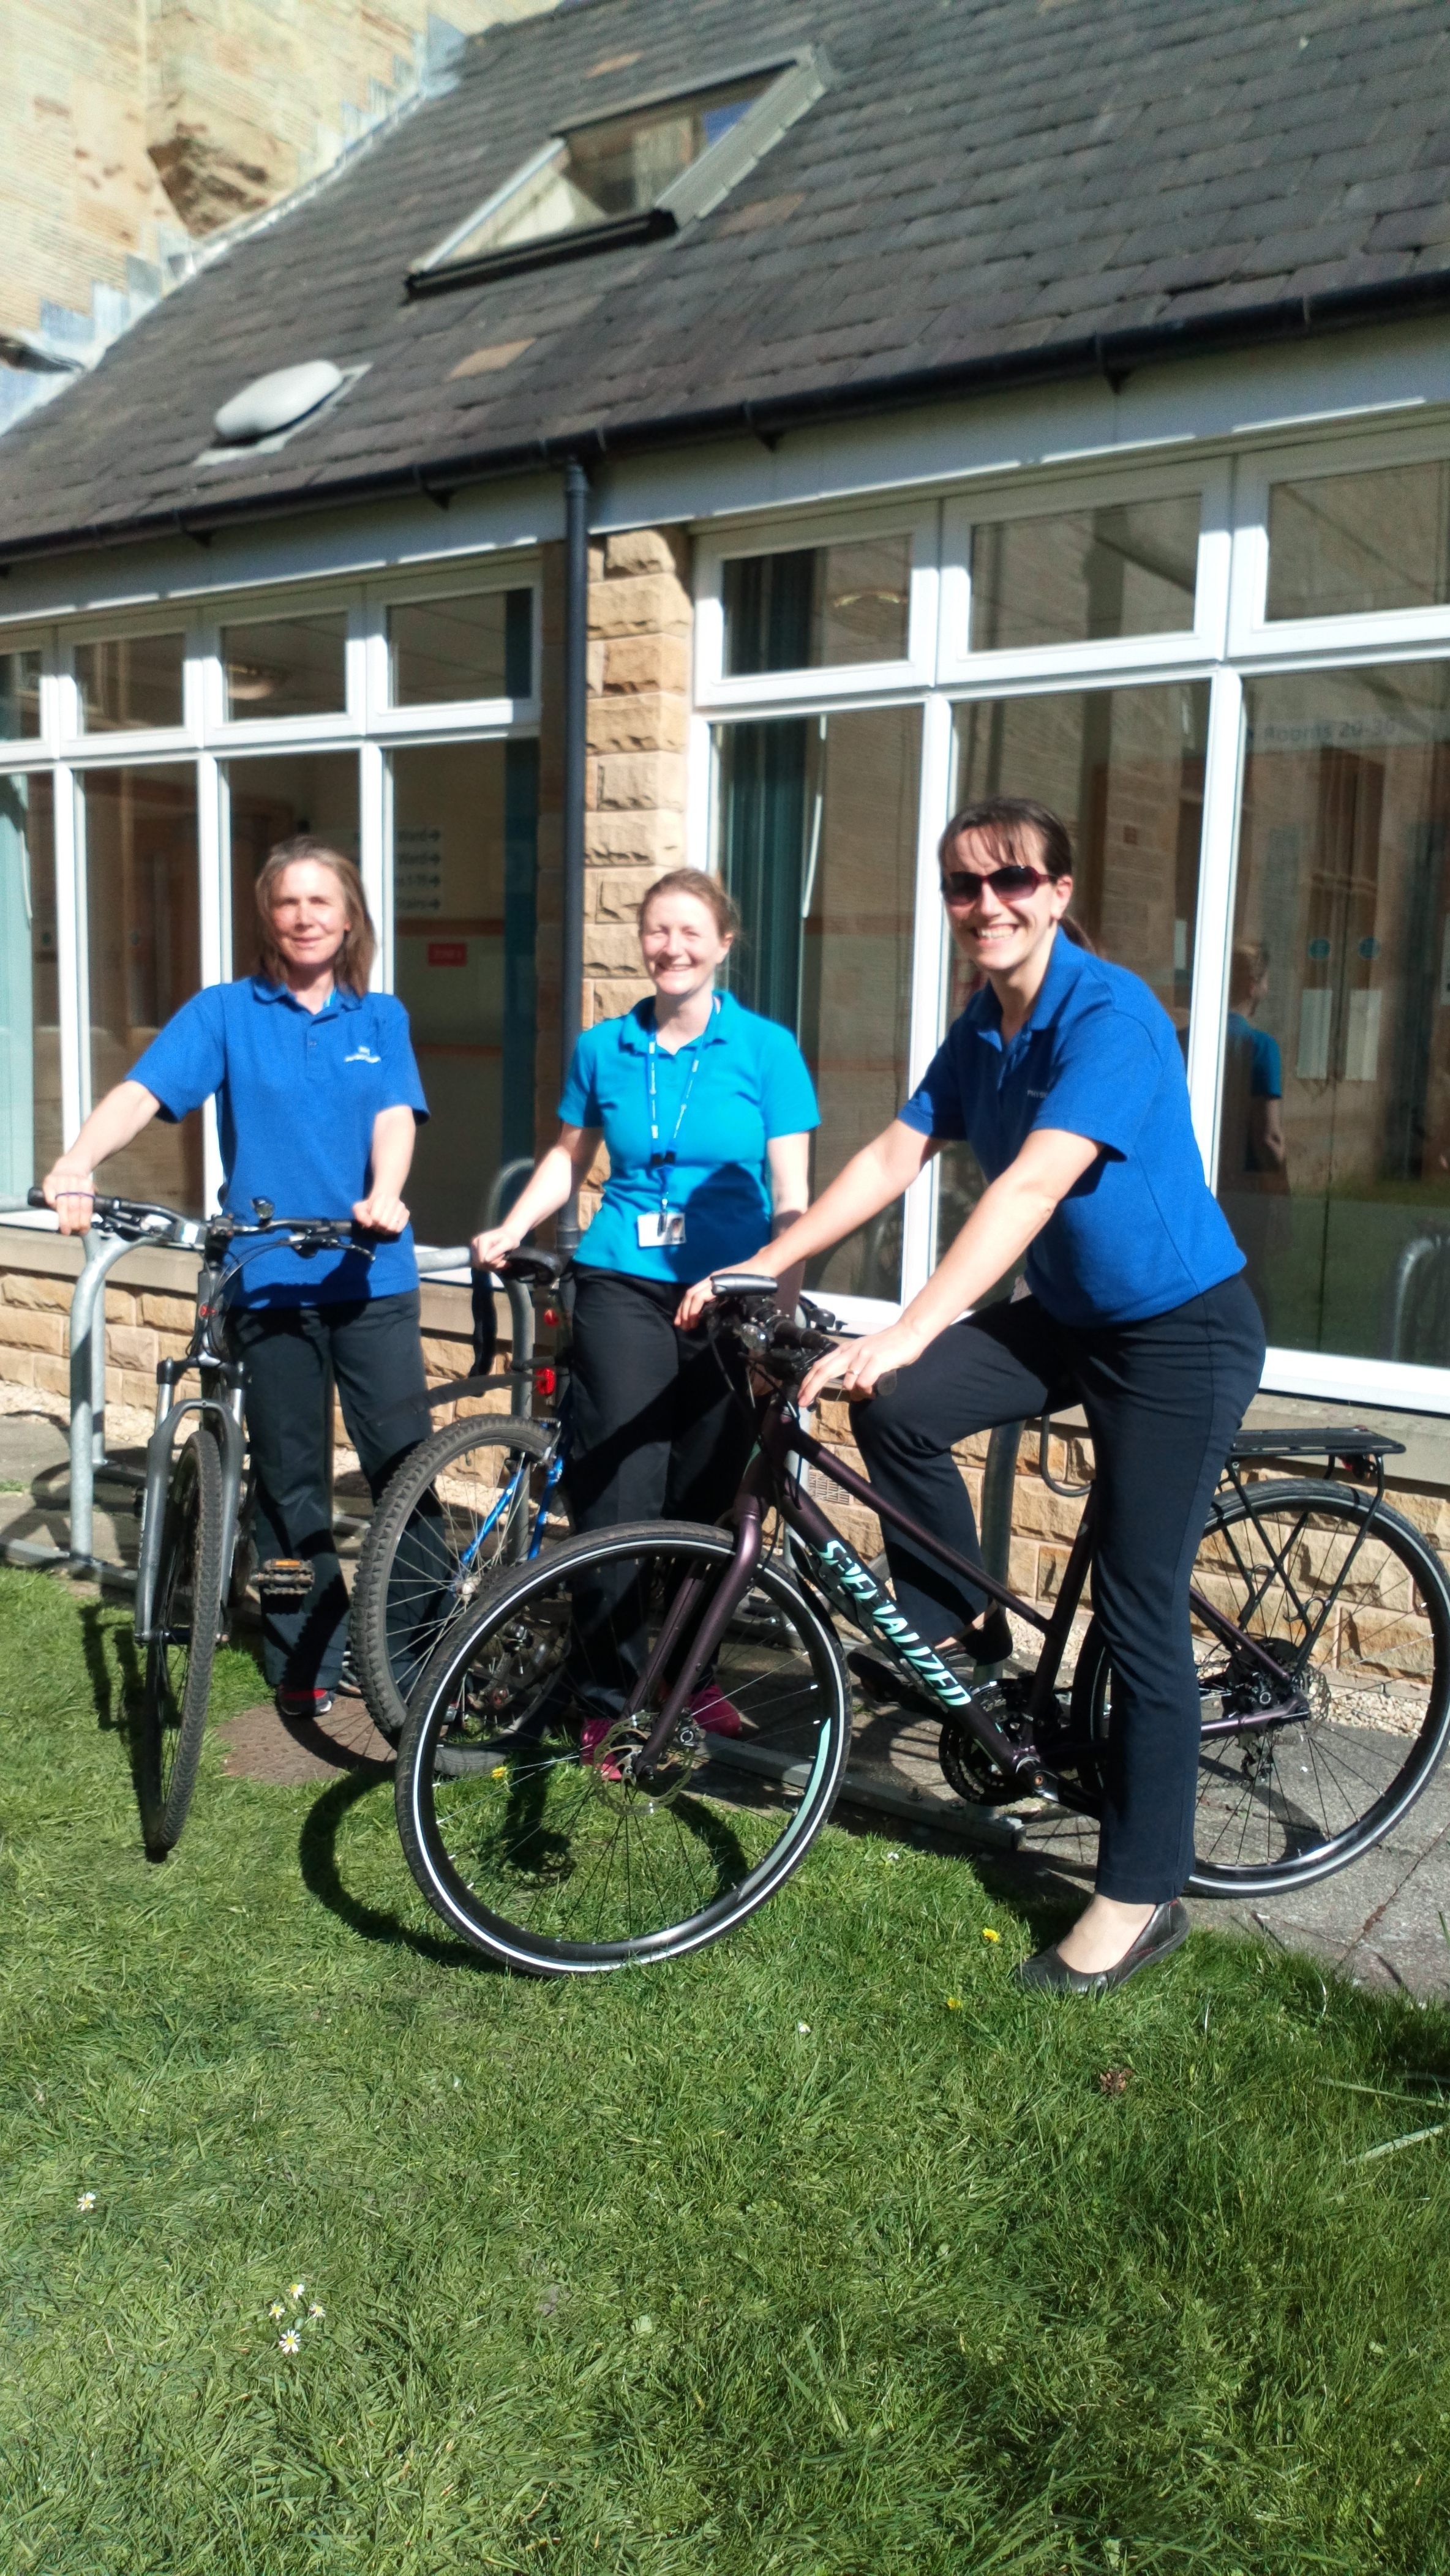 Physiotherapists on wheels